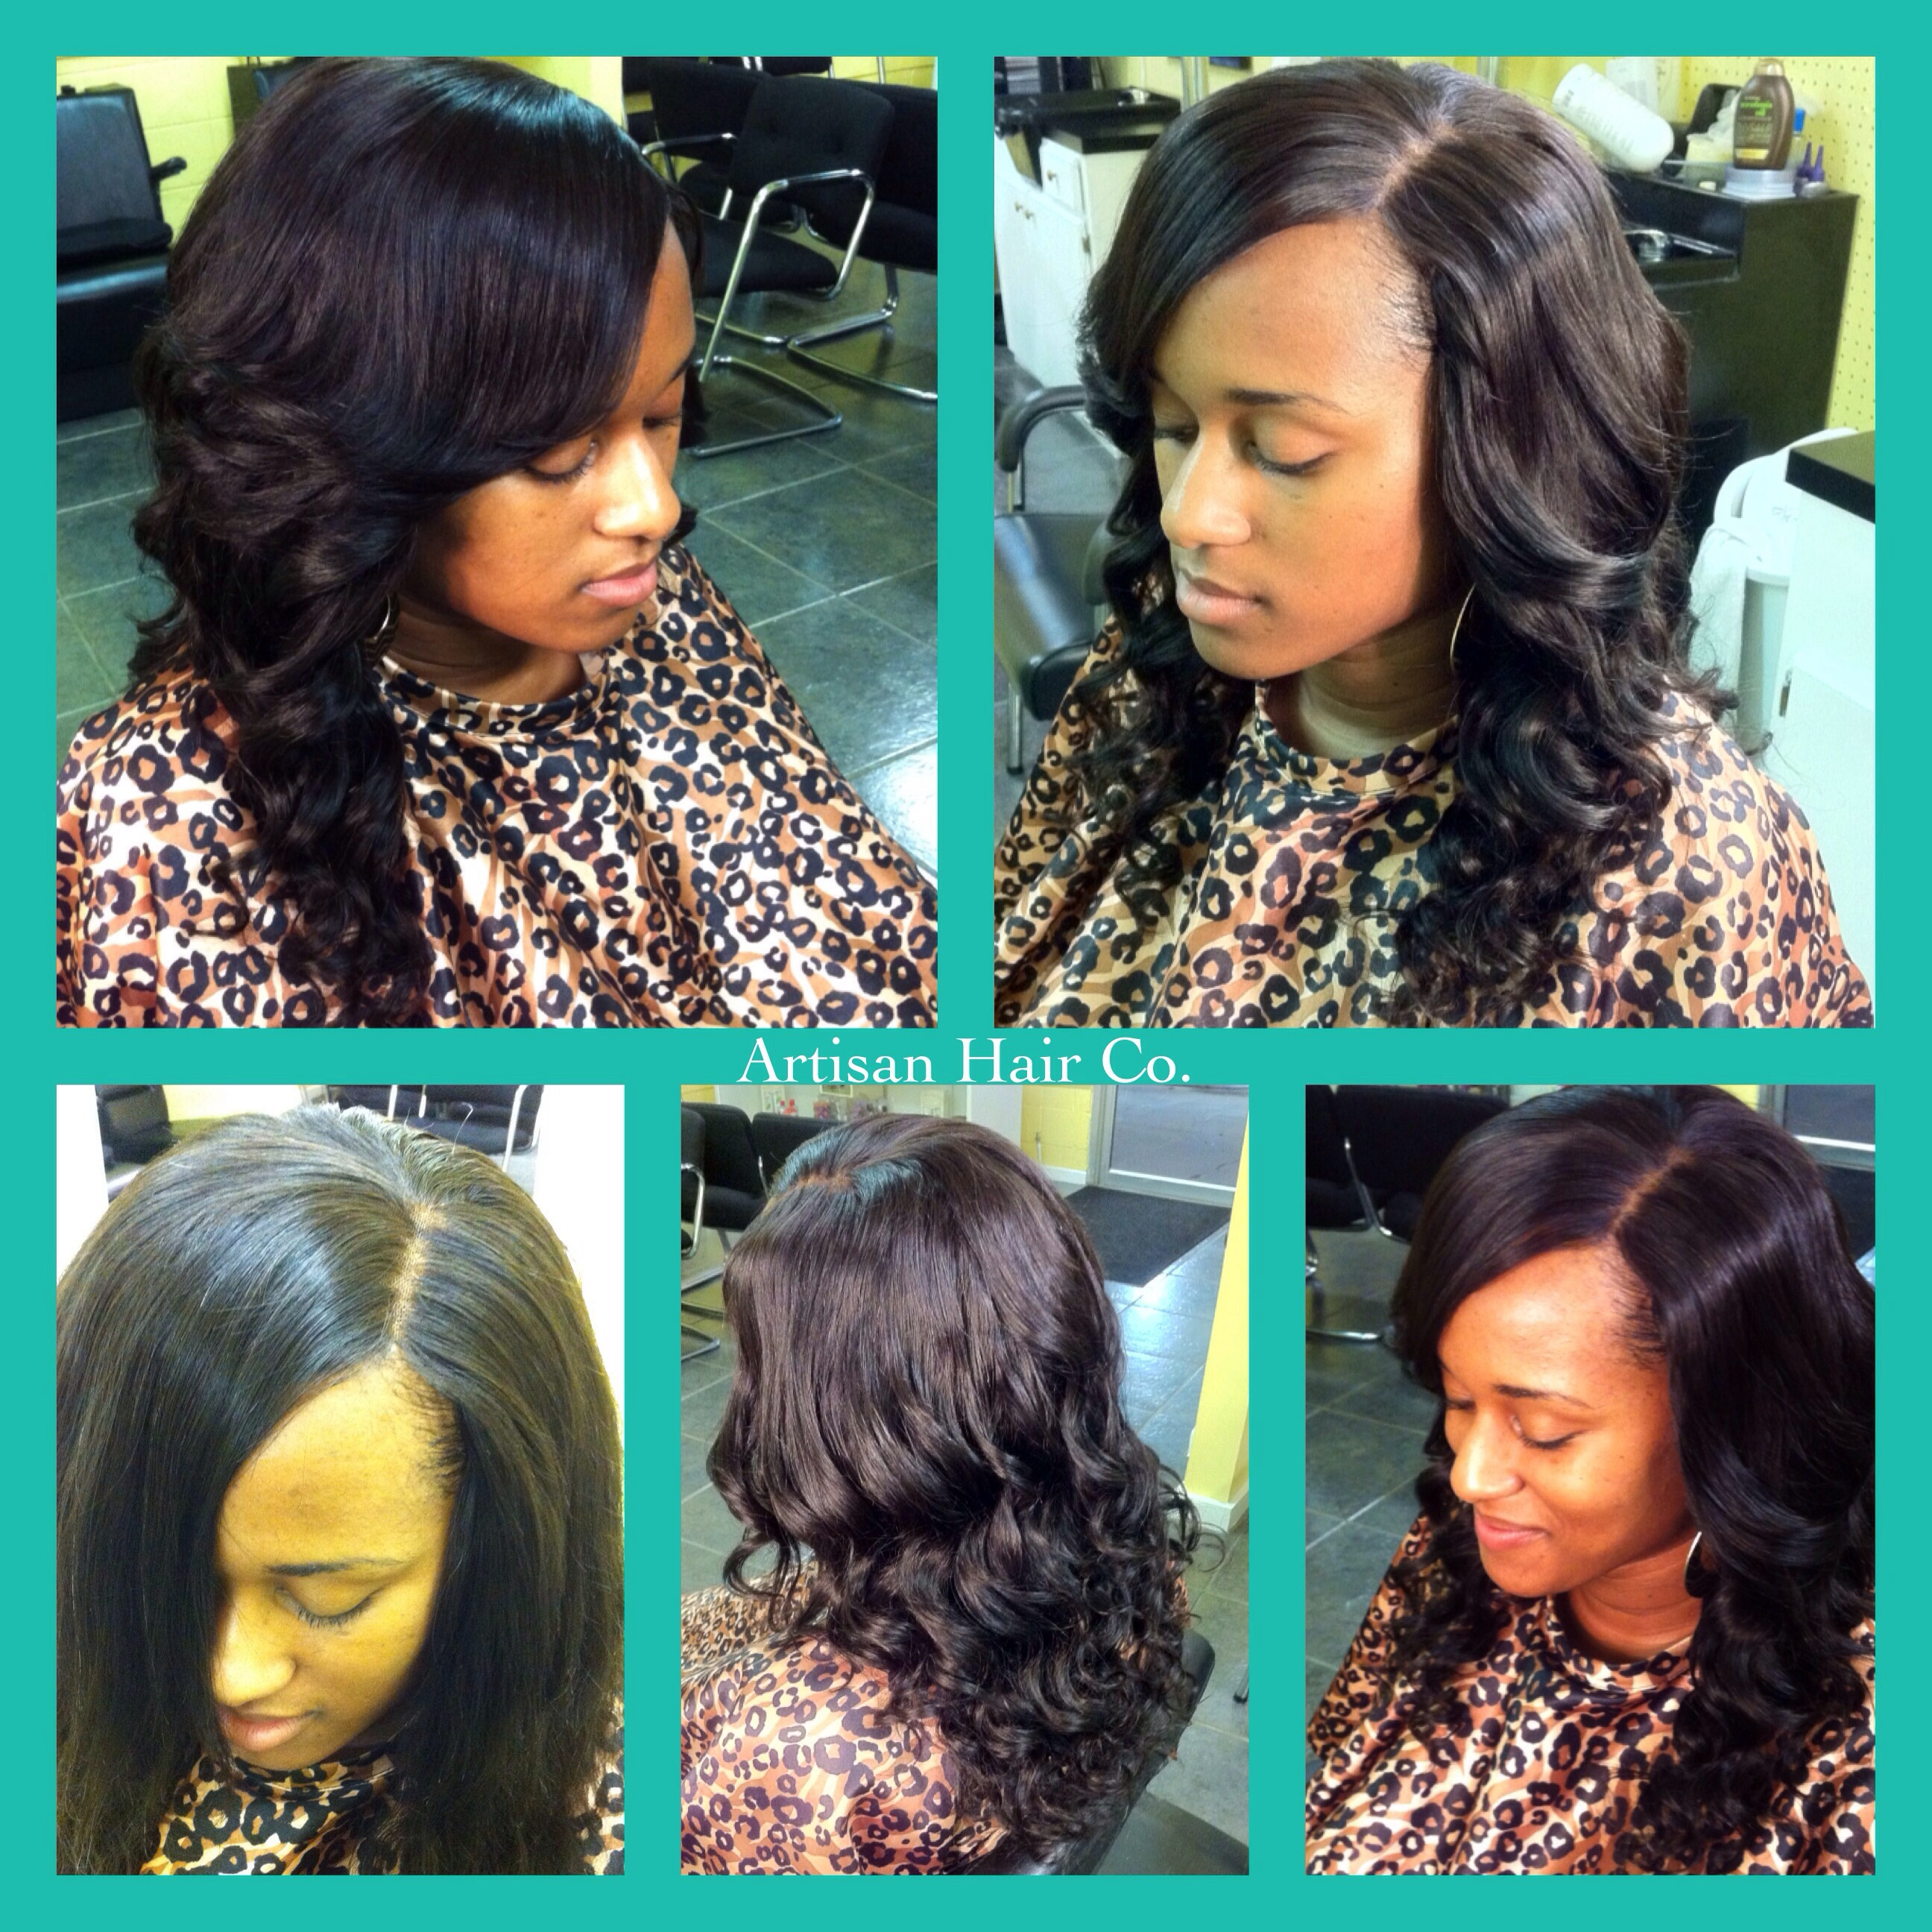 Full Sew In No Leave Out With Lace Closure Artisan Hair Company Llc